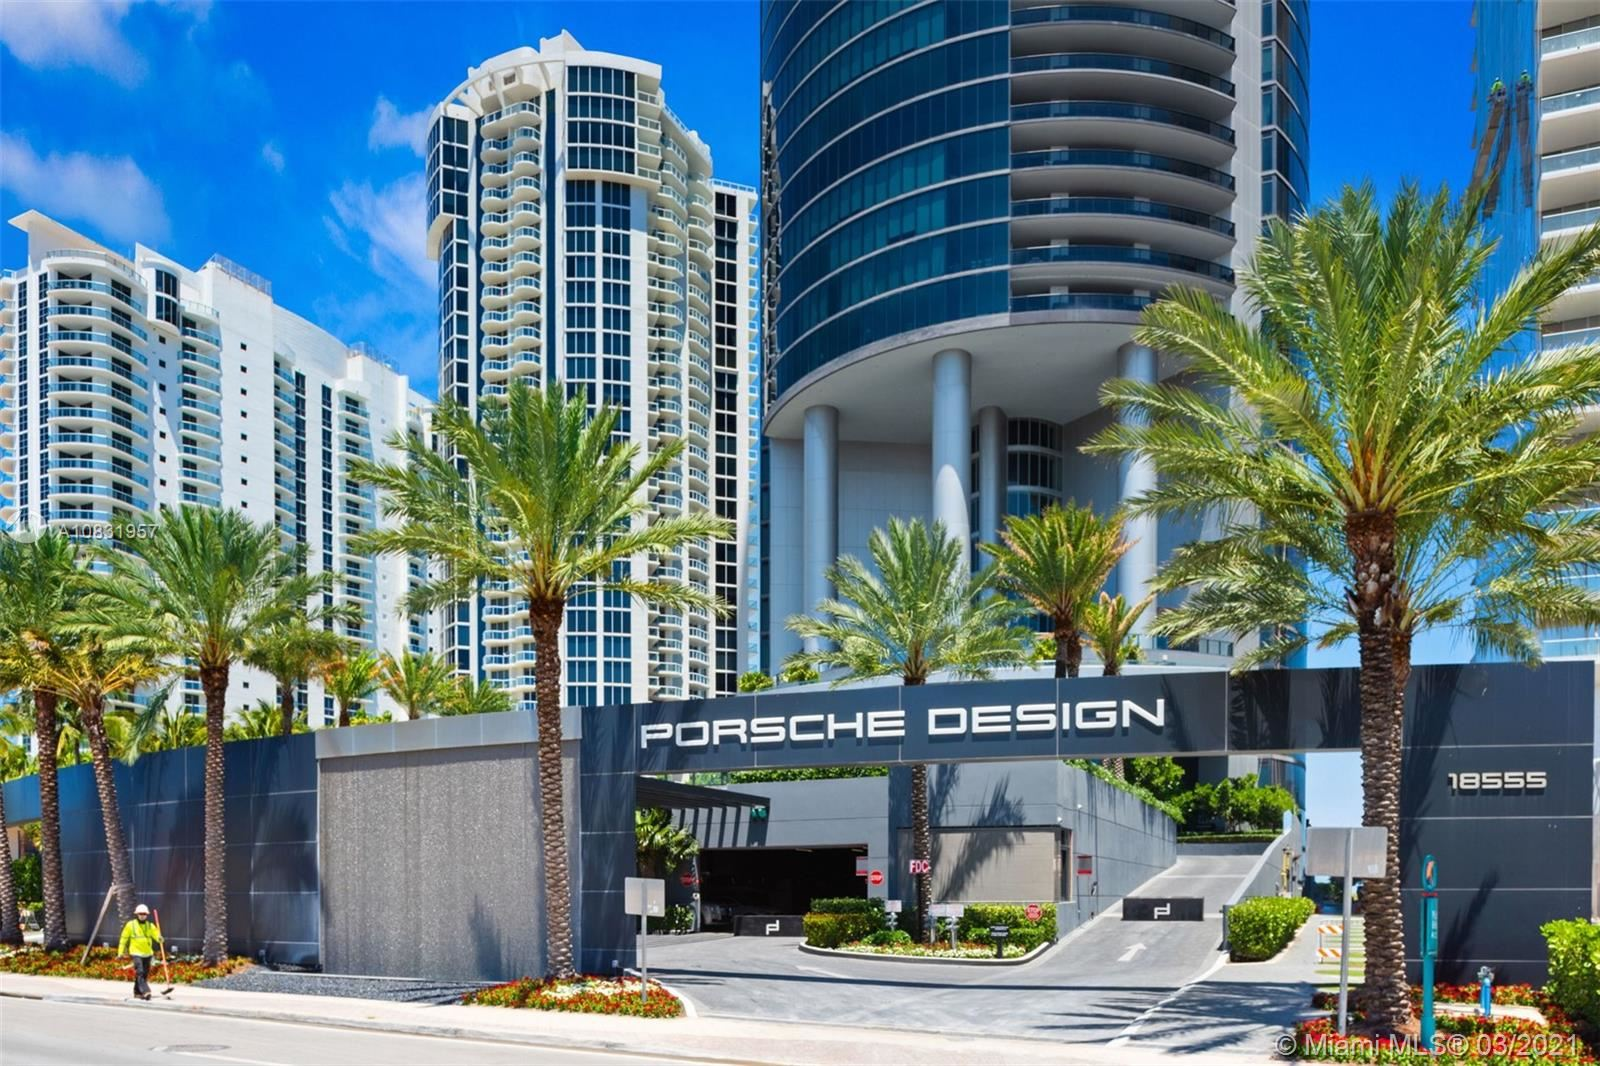 18555 Collins Ave #905, Sunny Isles, FL 33160 - #: A10831957